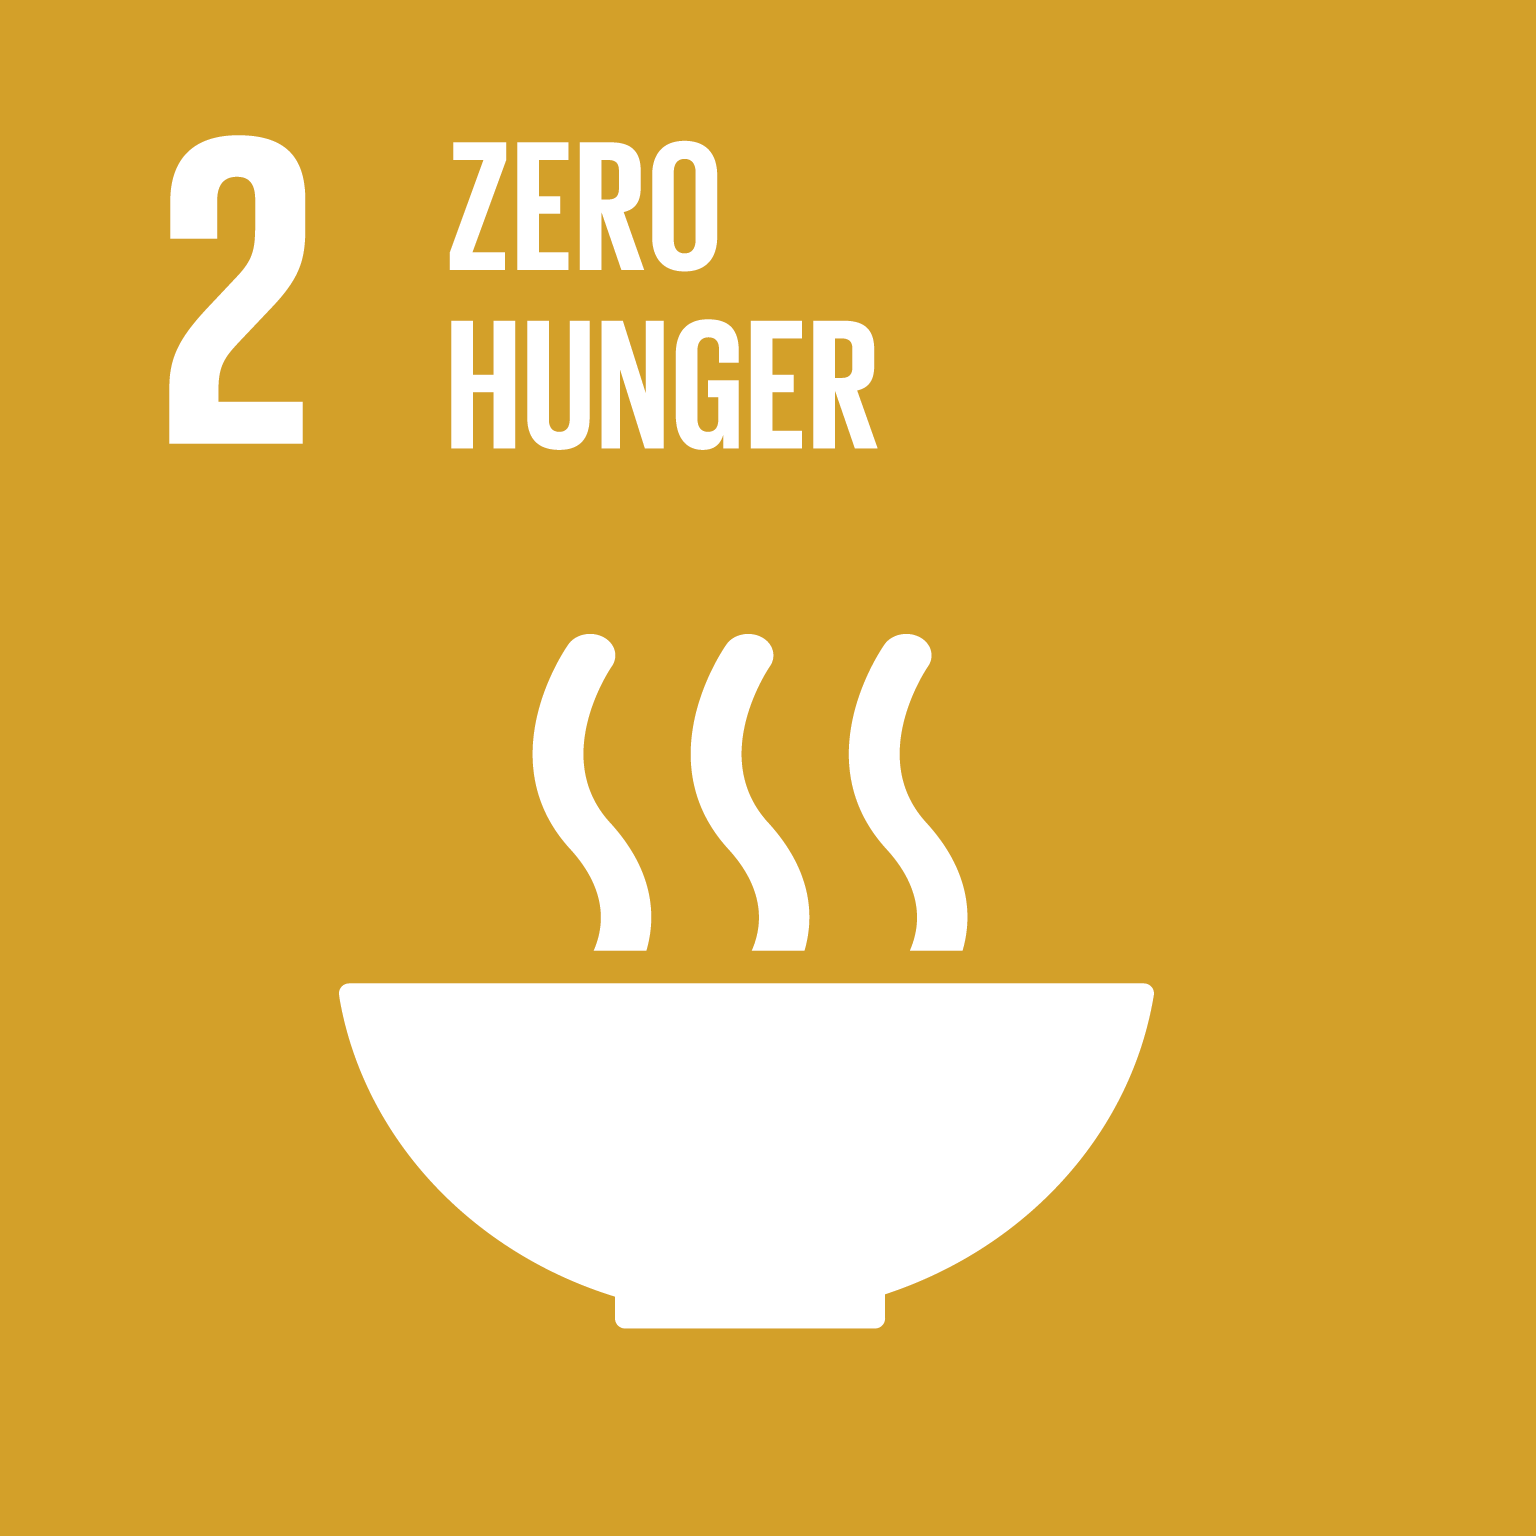 SDG 2 Posters